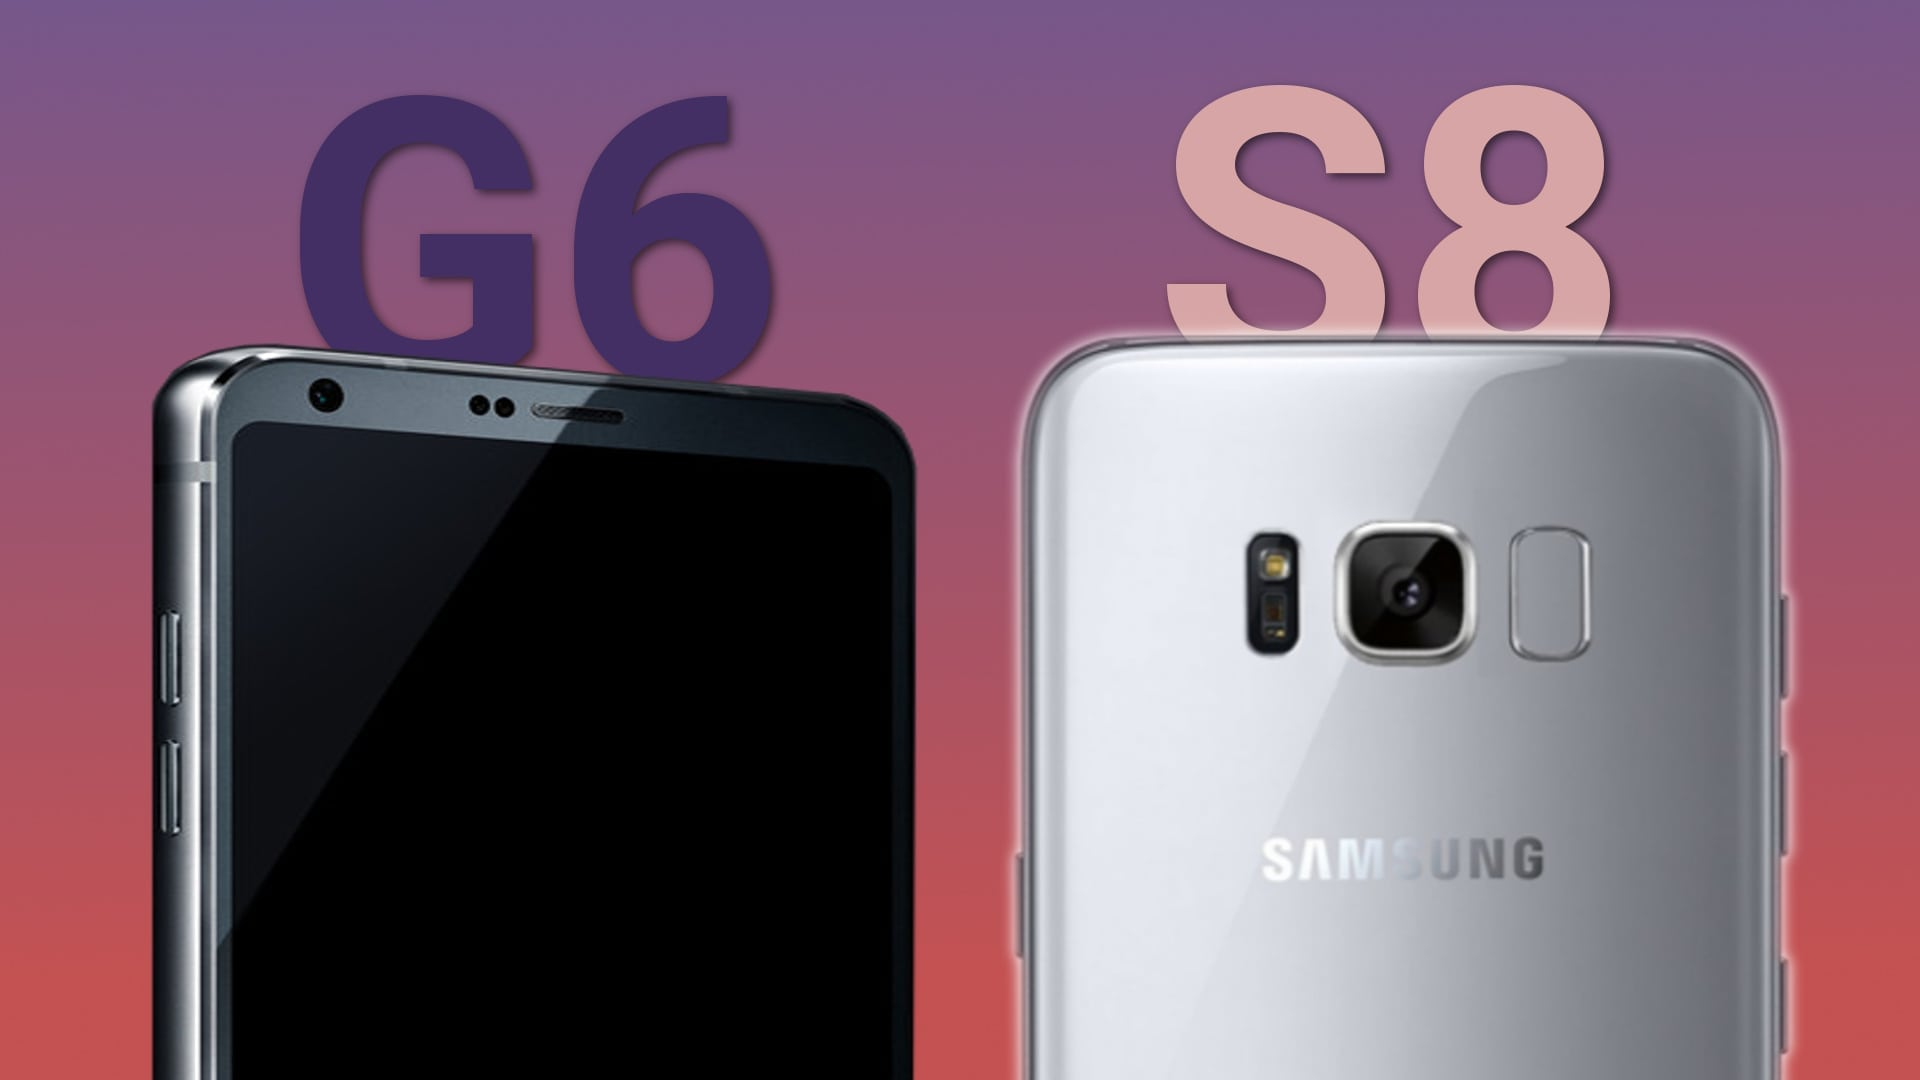 Samsung Galaxy S8 vs LG G6: Which One Should You Buy?